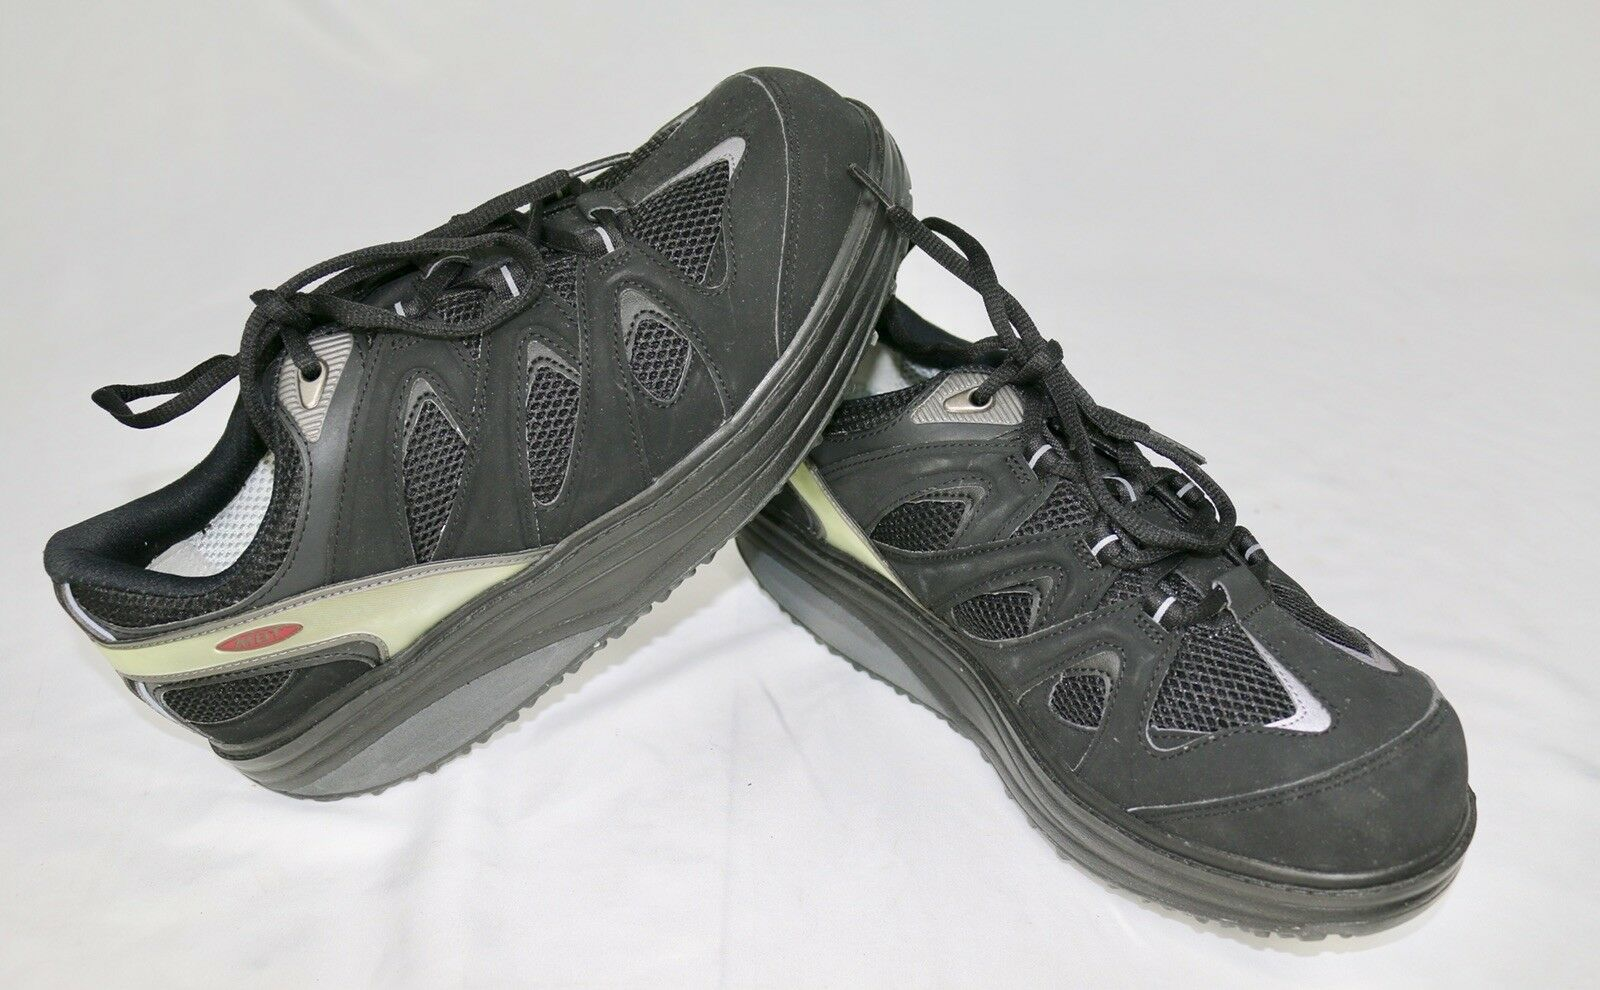 MBT ANTI-SHOE BLACK LEATHER FITNESS WALKING CASUAL SHOES Size 11